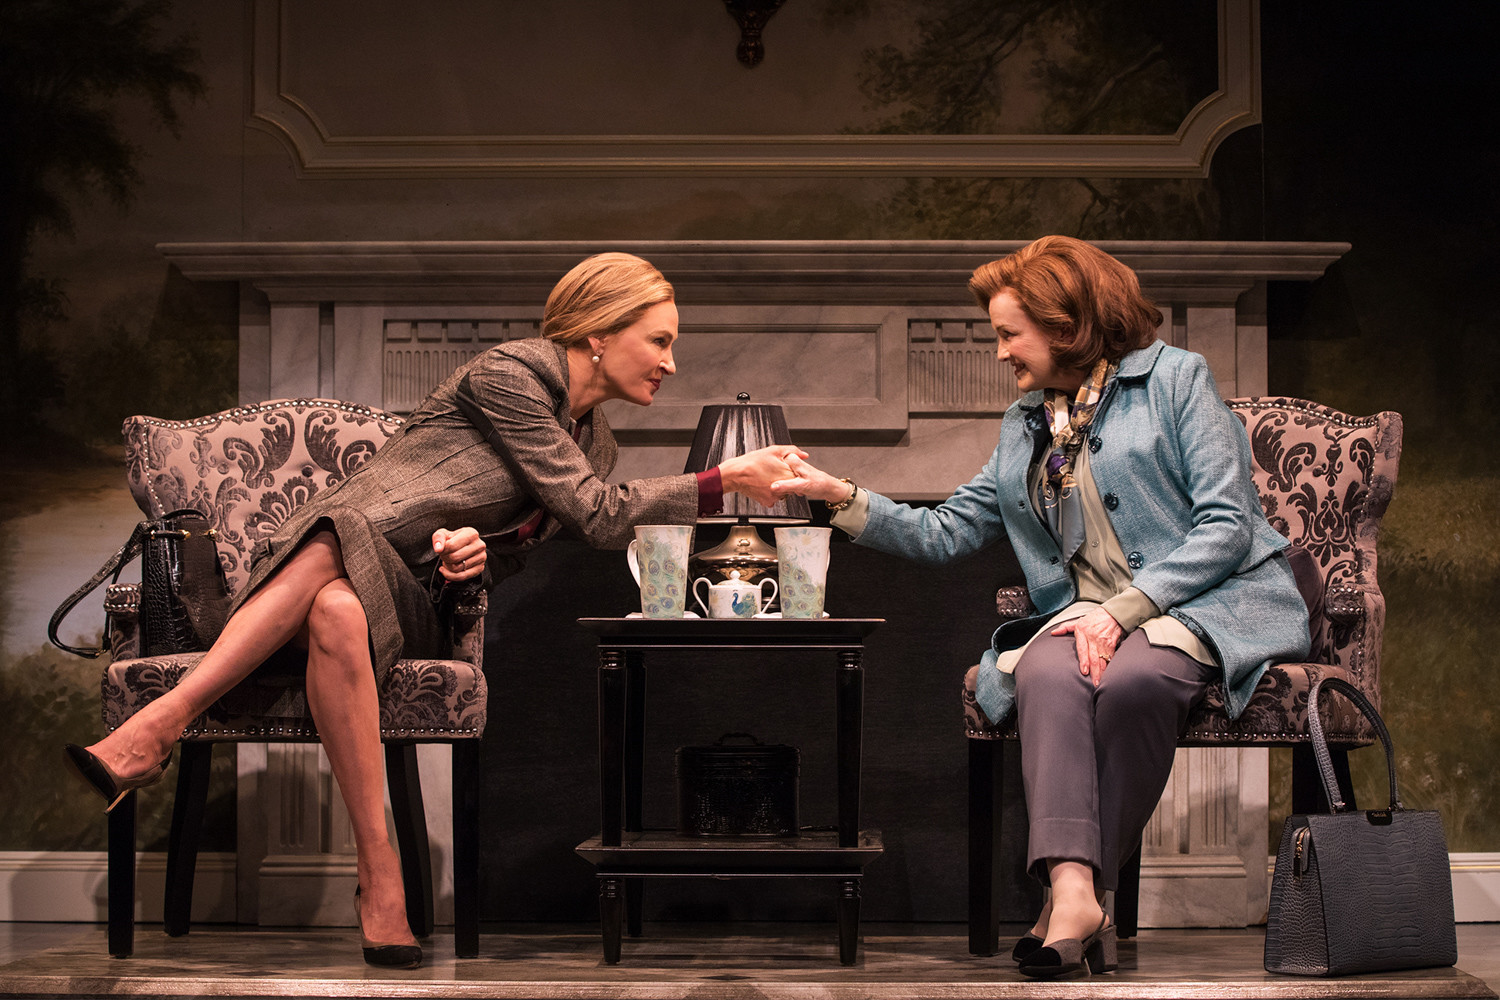 Uma Thurman, left, makes her Broadway debut in the limited engagement play 'The Parisian Woman' from 'House of Cards' creator Beau Willimon. Joining her in a handshake is Blair Brown.